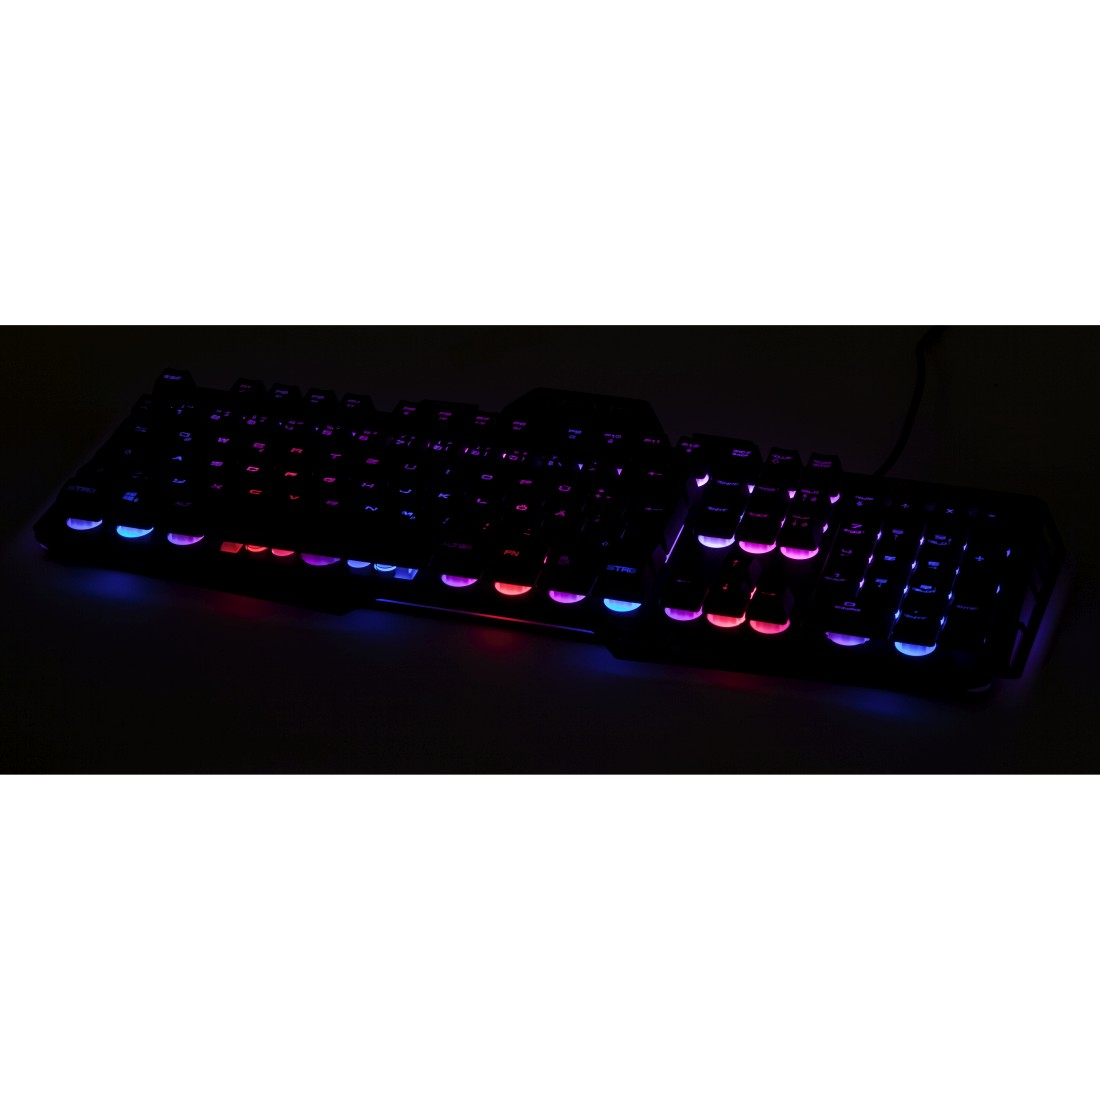 awx8 High-Res Appliance 8 - Hama, uRage Cyberboard Metal Gaming Keyboard